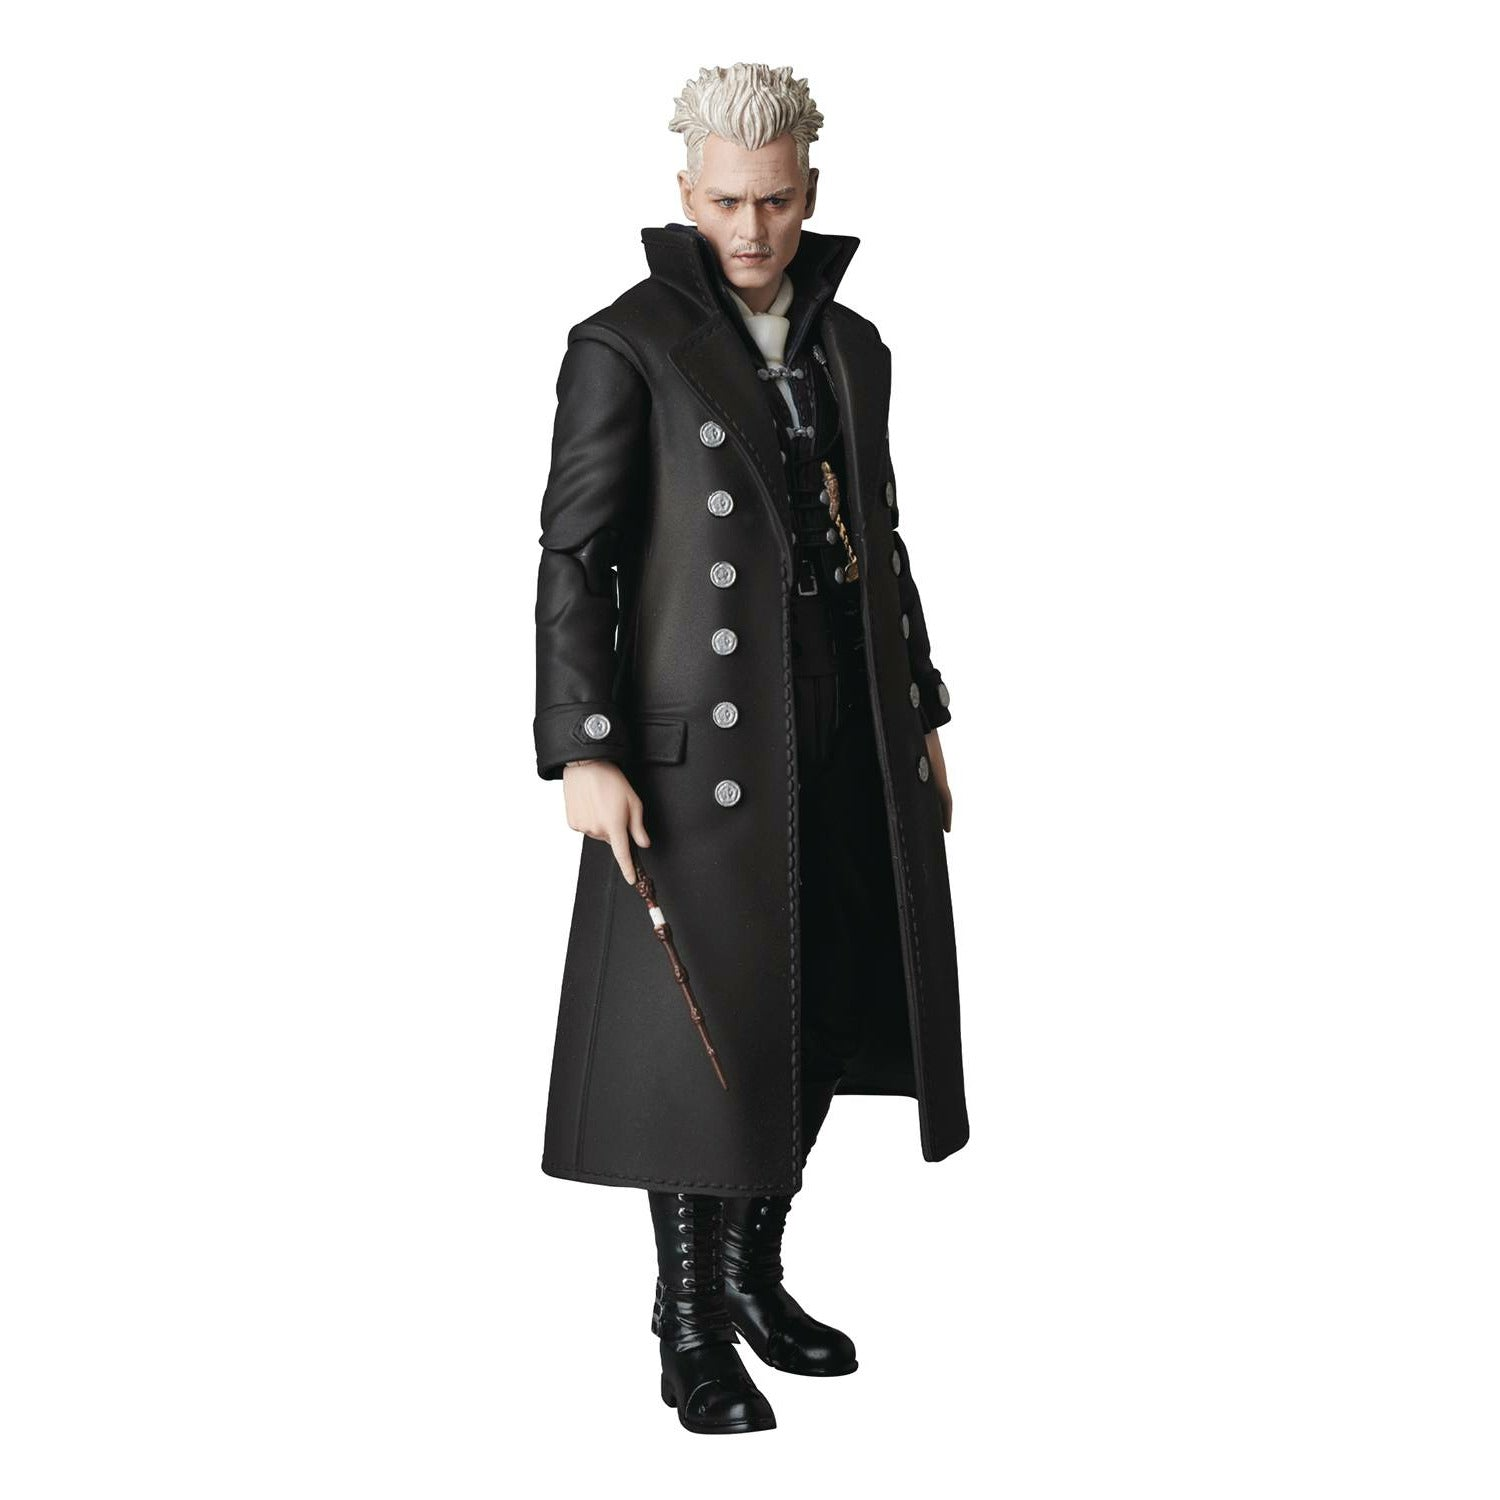 Fantastic Beasts Grindelwald MAFEX Action Figure